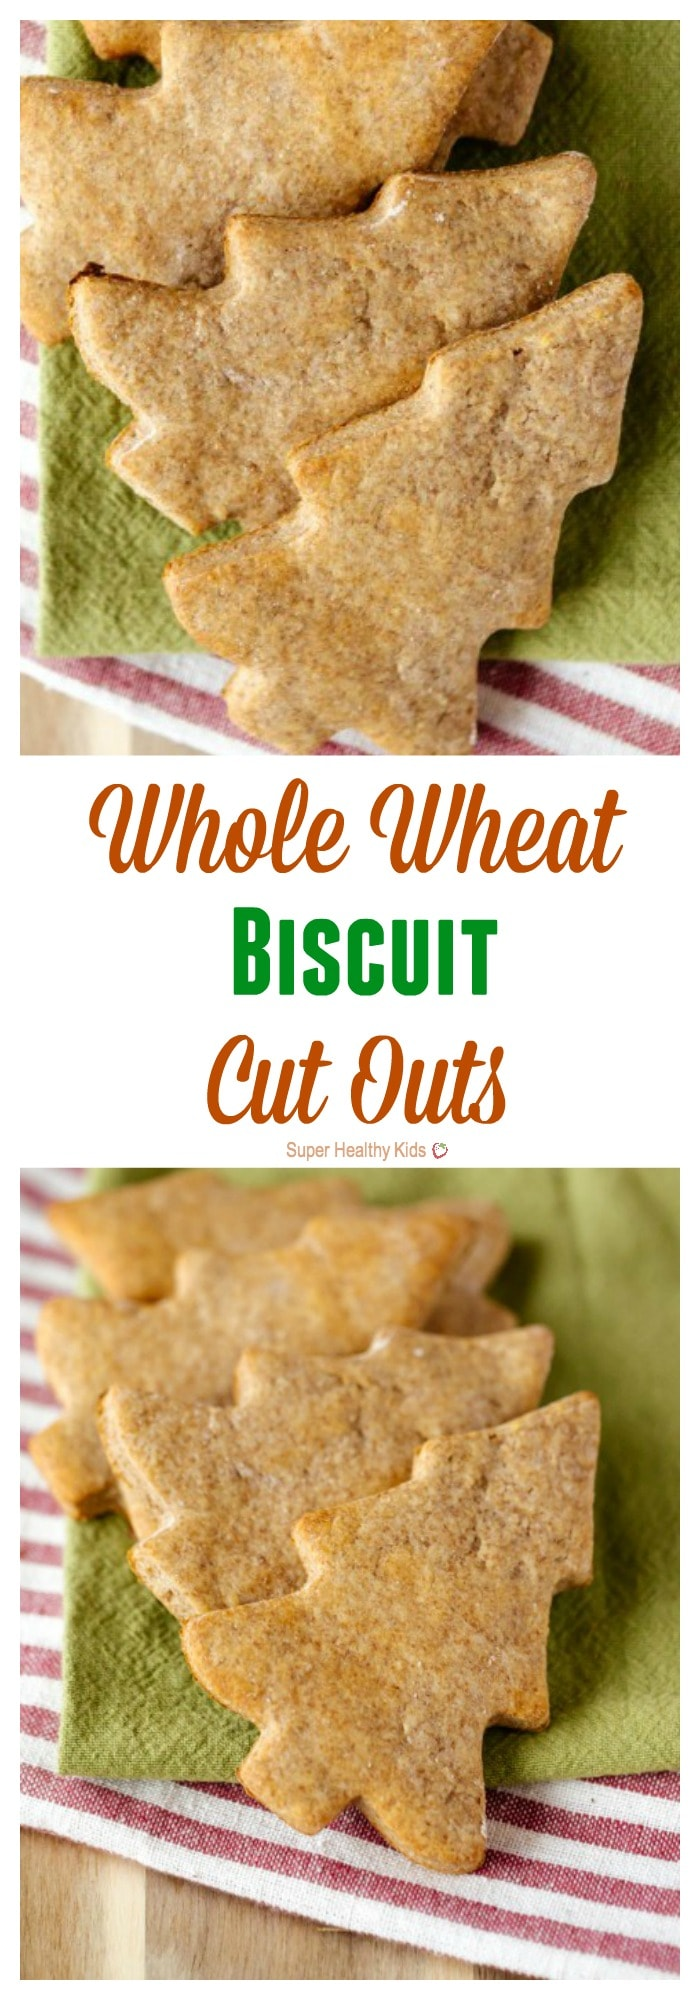 Whole Wheat Biscuit Cut Outs. 4 reasons why your kids need whole wheat...and some yummy biscuits to try! https://www.superhealthykids.com/christmas-in-a-biscuit/